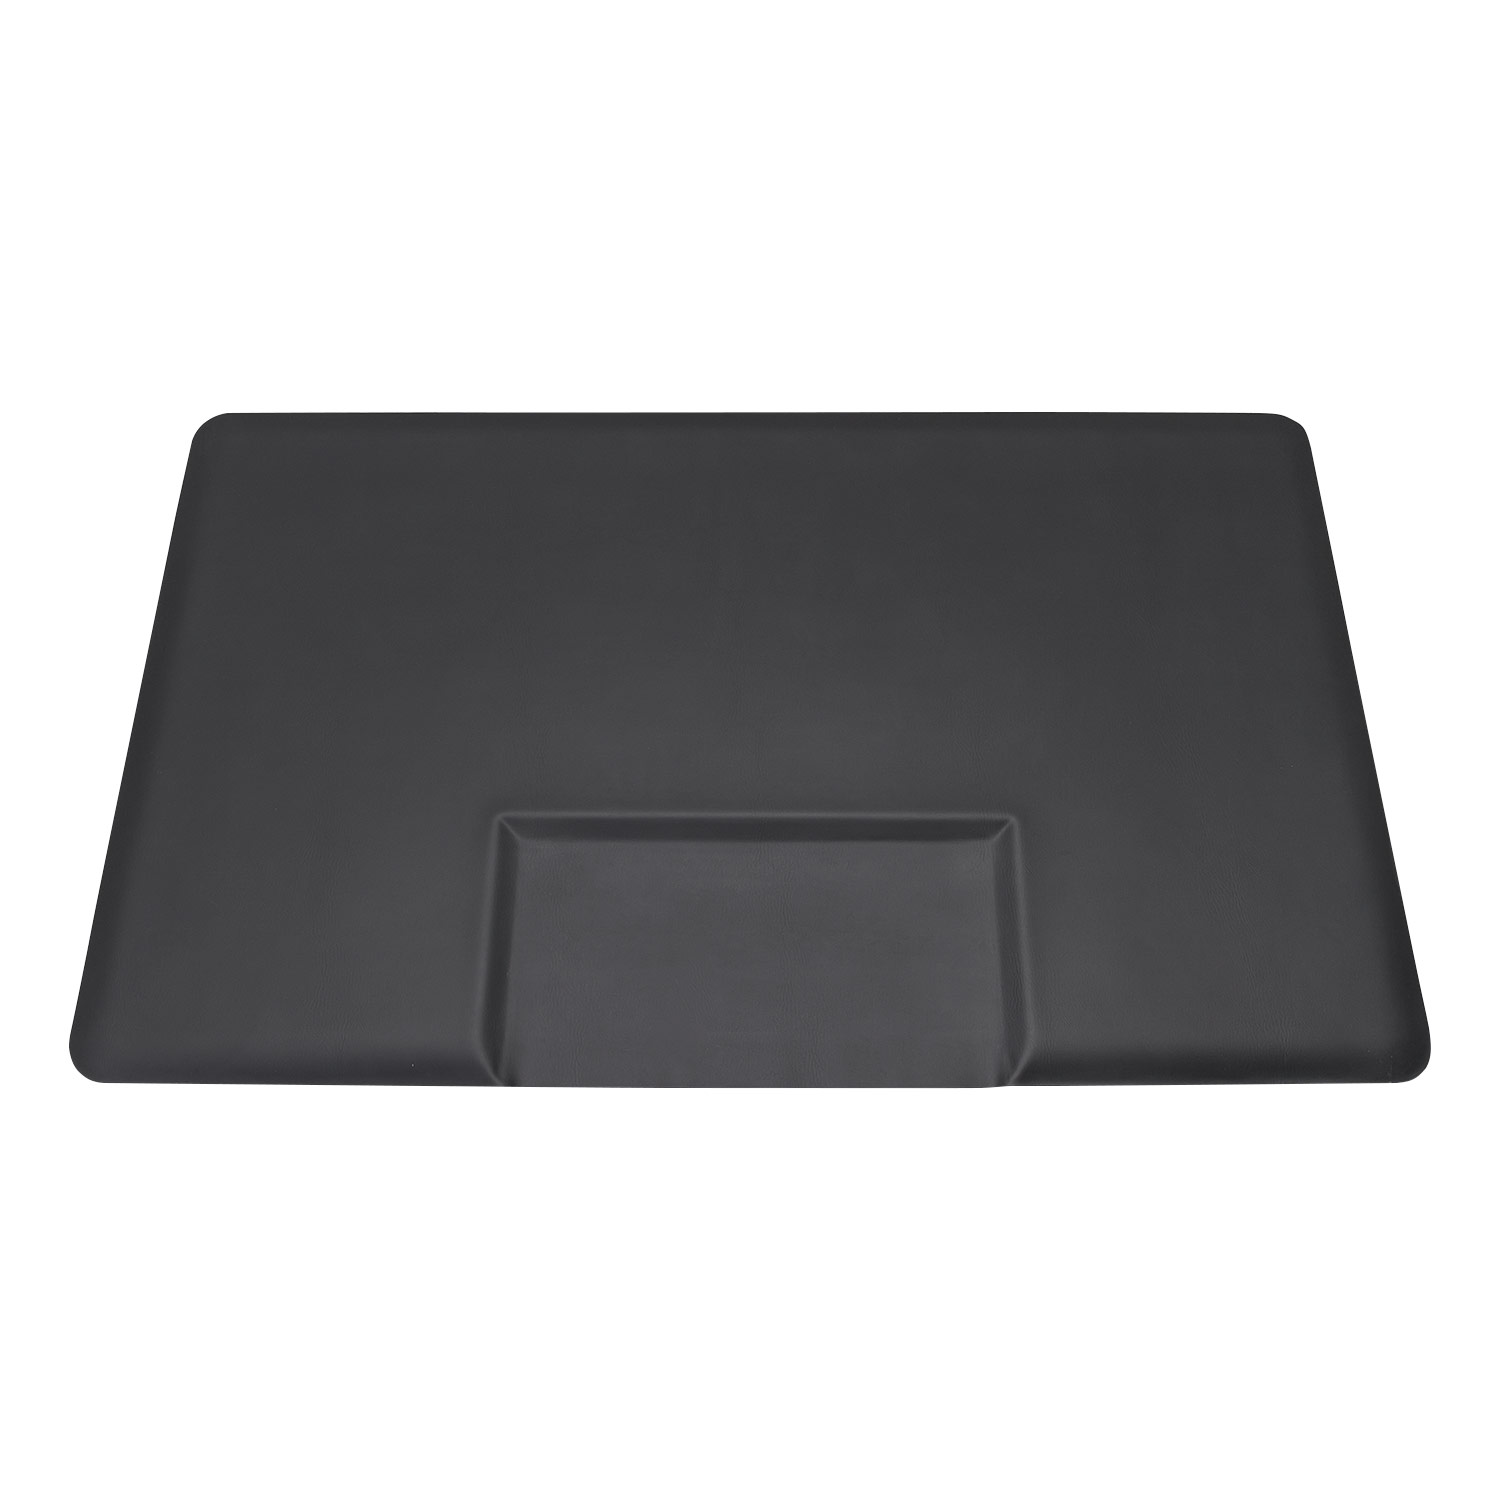 Rectangular 3x5 Anti-Fatigue Salon Chair Mat With Square Impression alternative product image 2